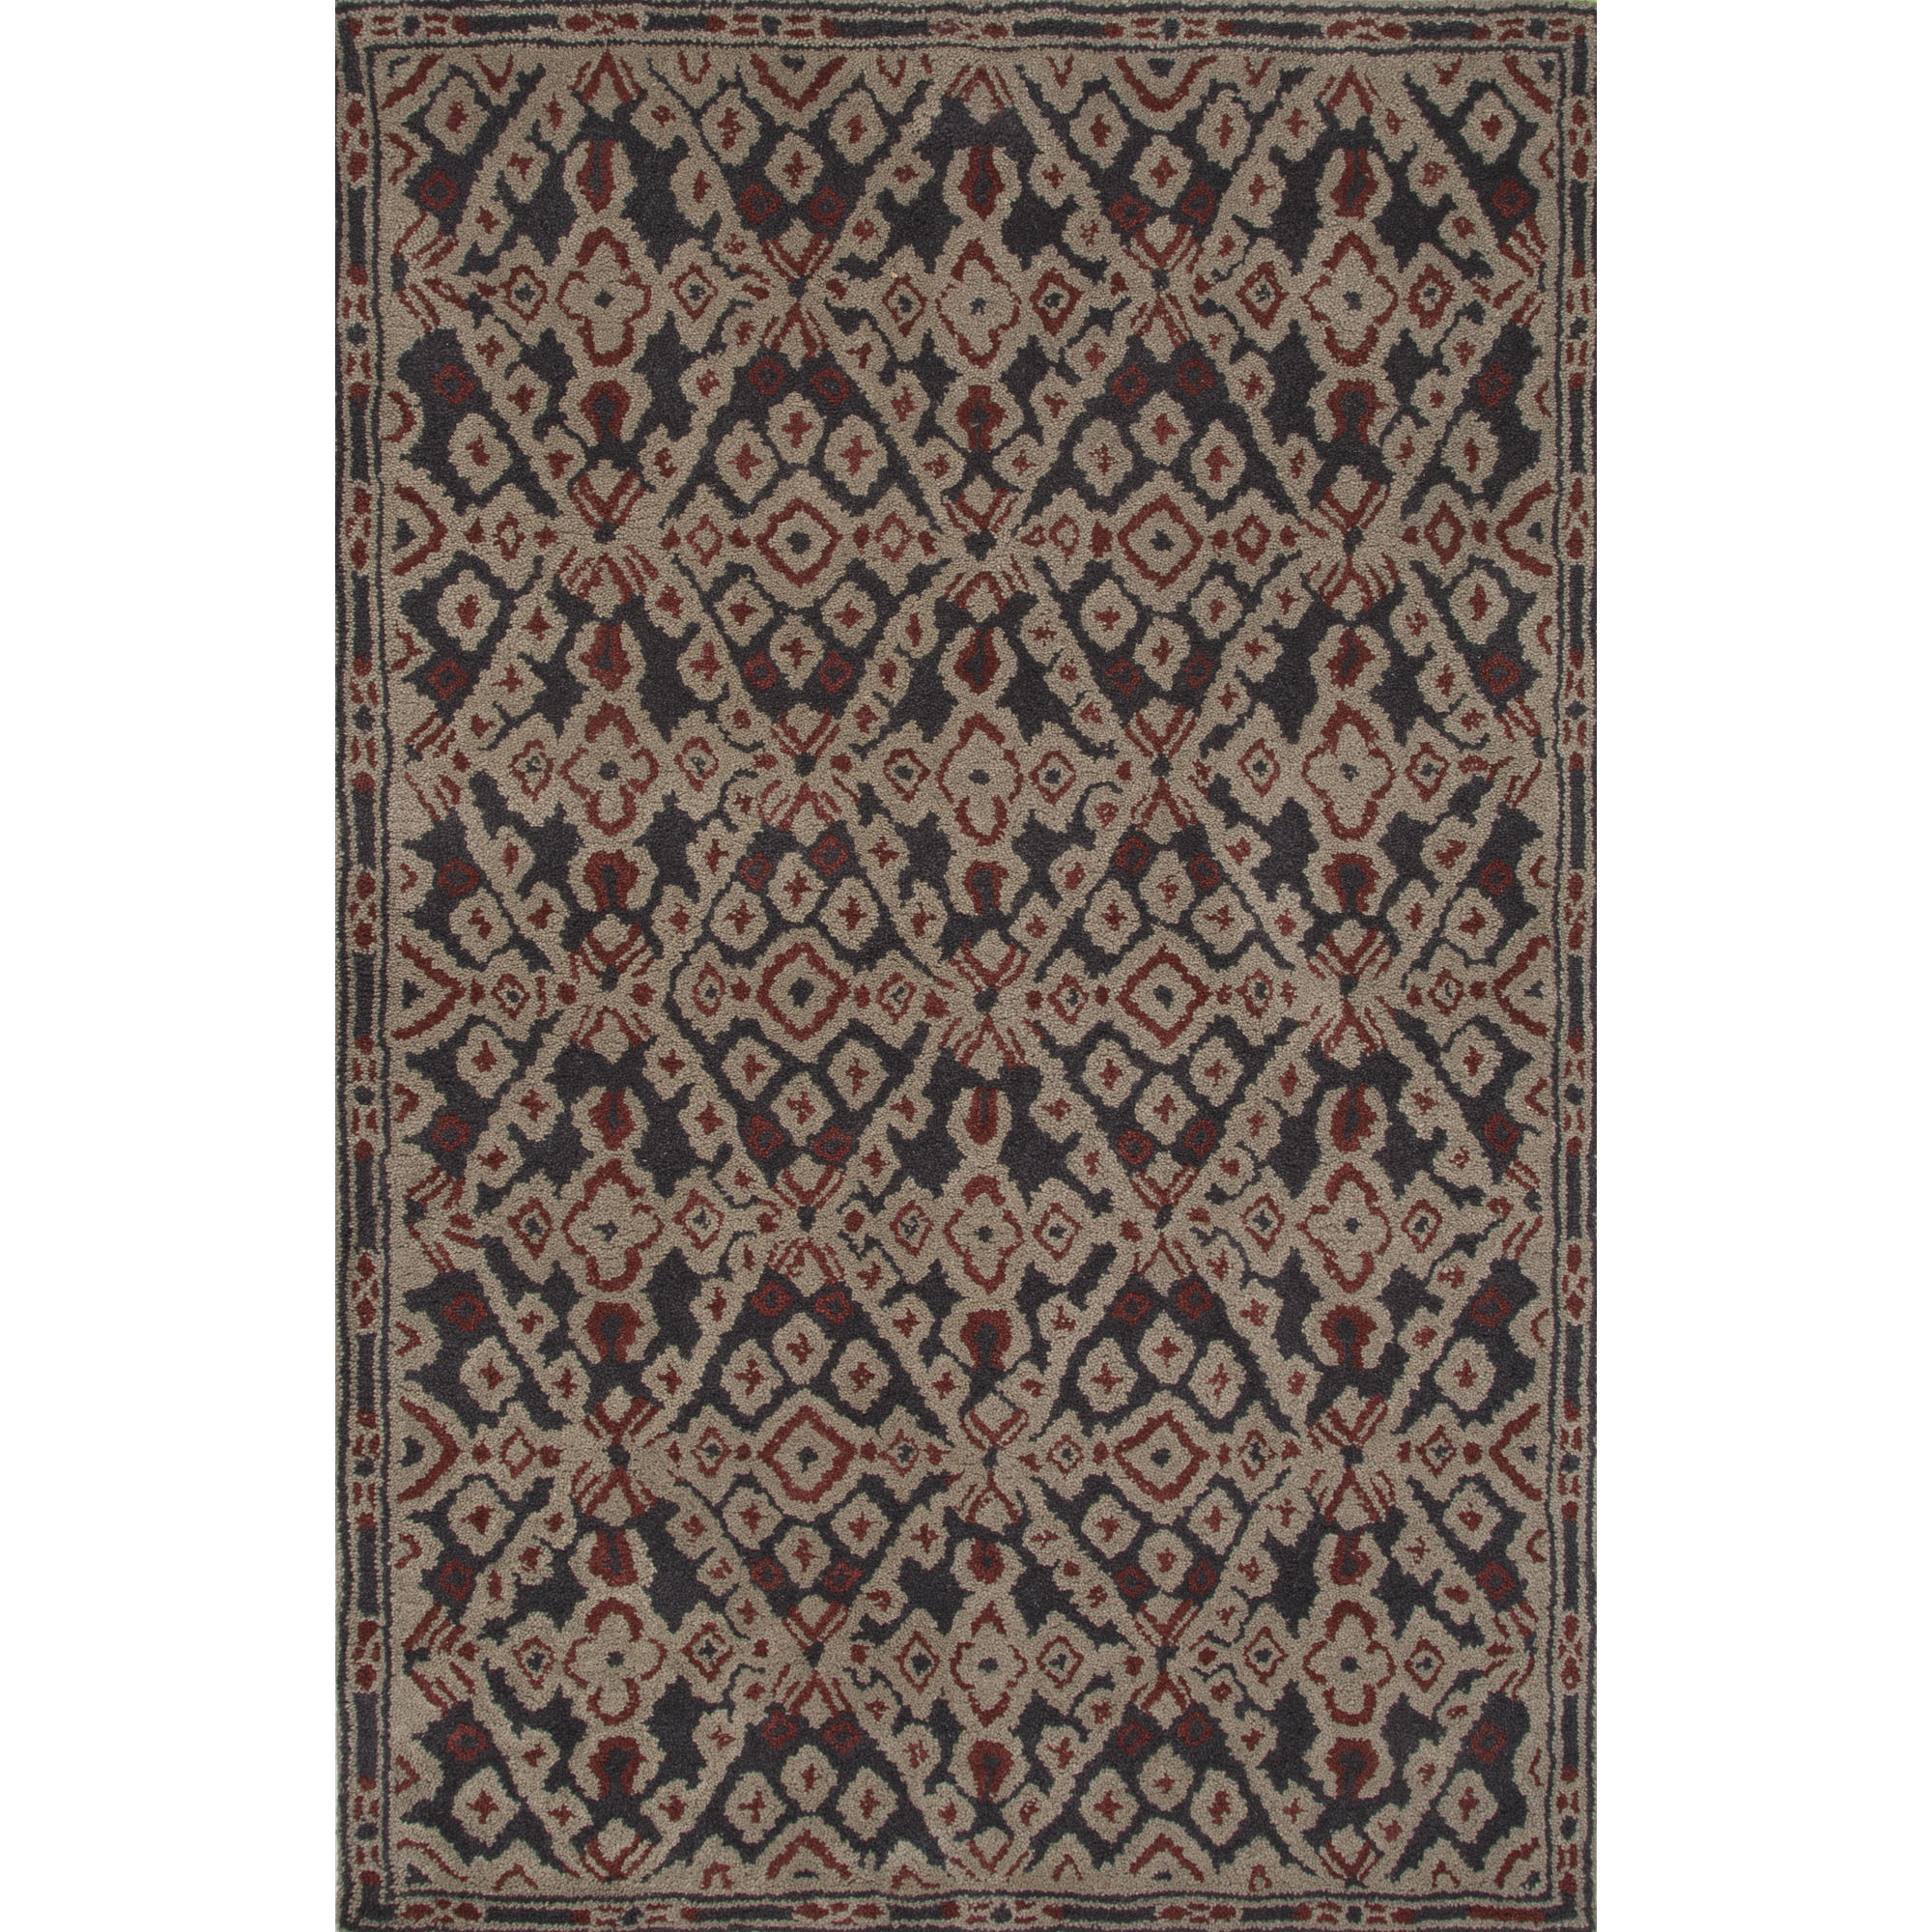 JAIPUR Rugs Traditions Made Modern Tufted 8 x 11 Rug - Item Number: RUG122193